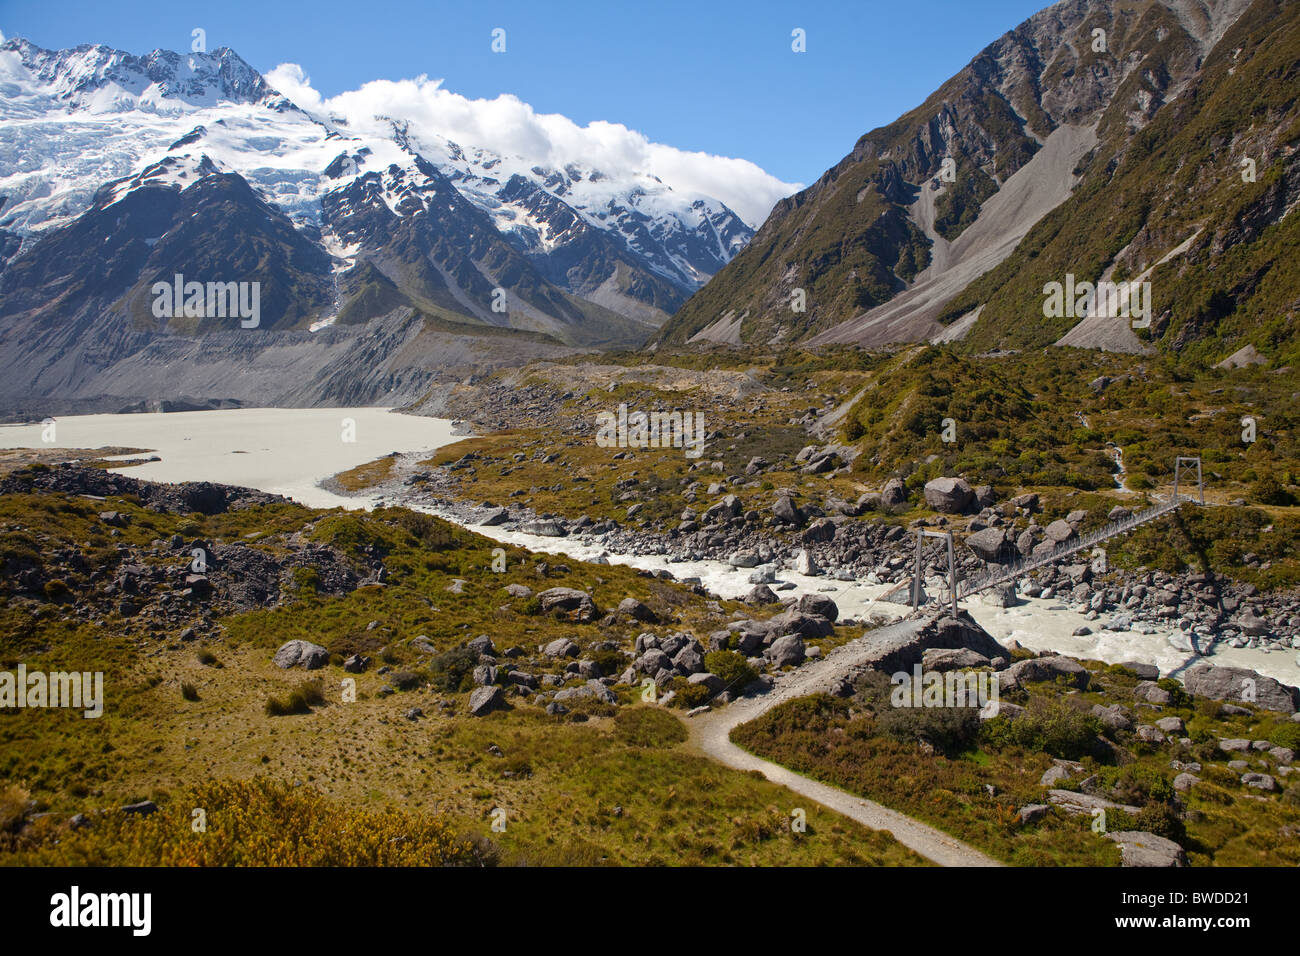 Looking up the Hooker Valley with Mueller Lake on the left - Stock Image